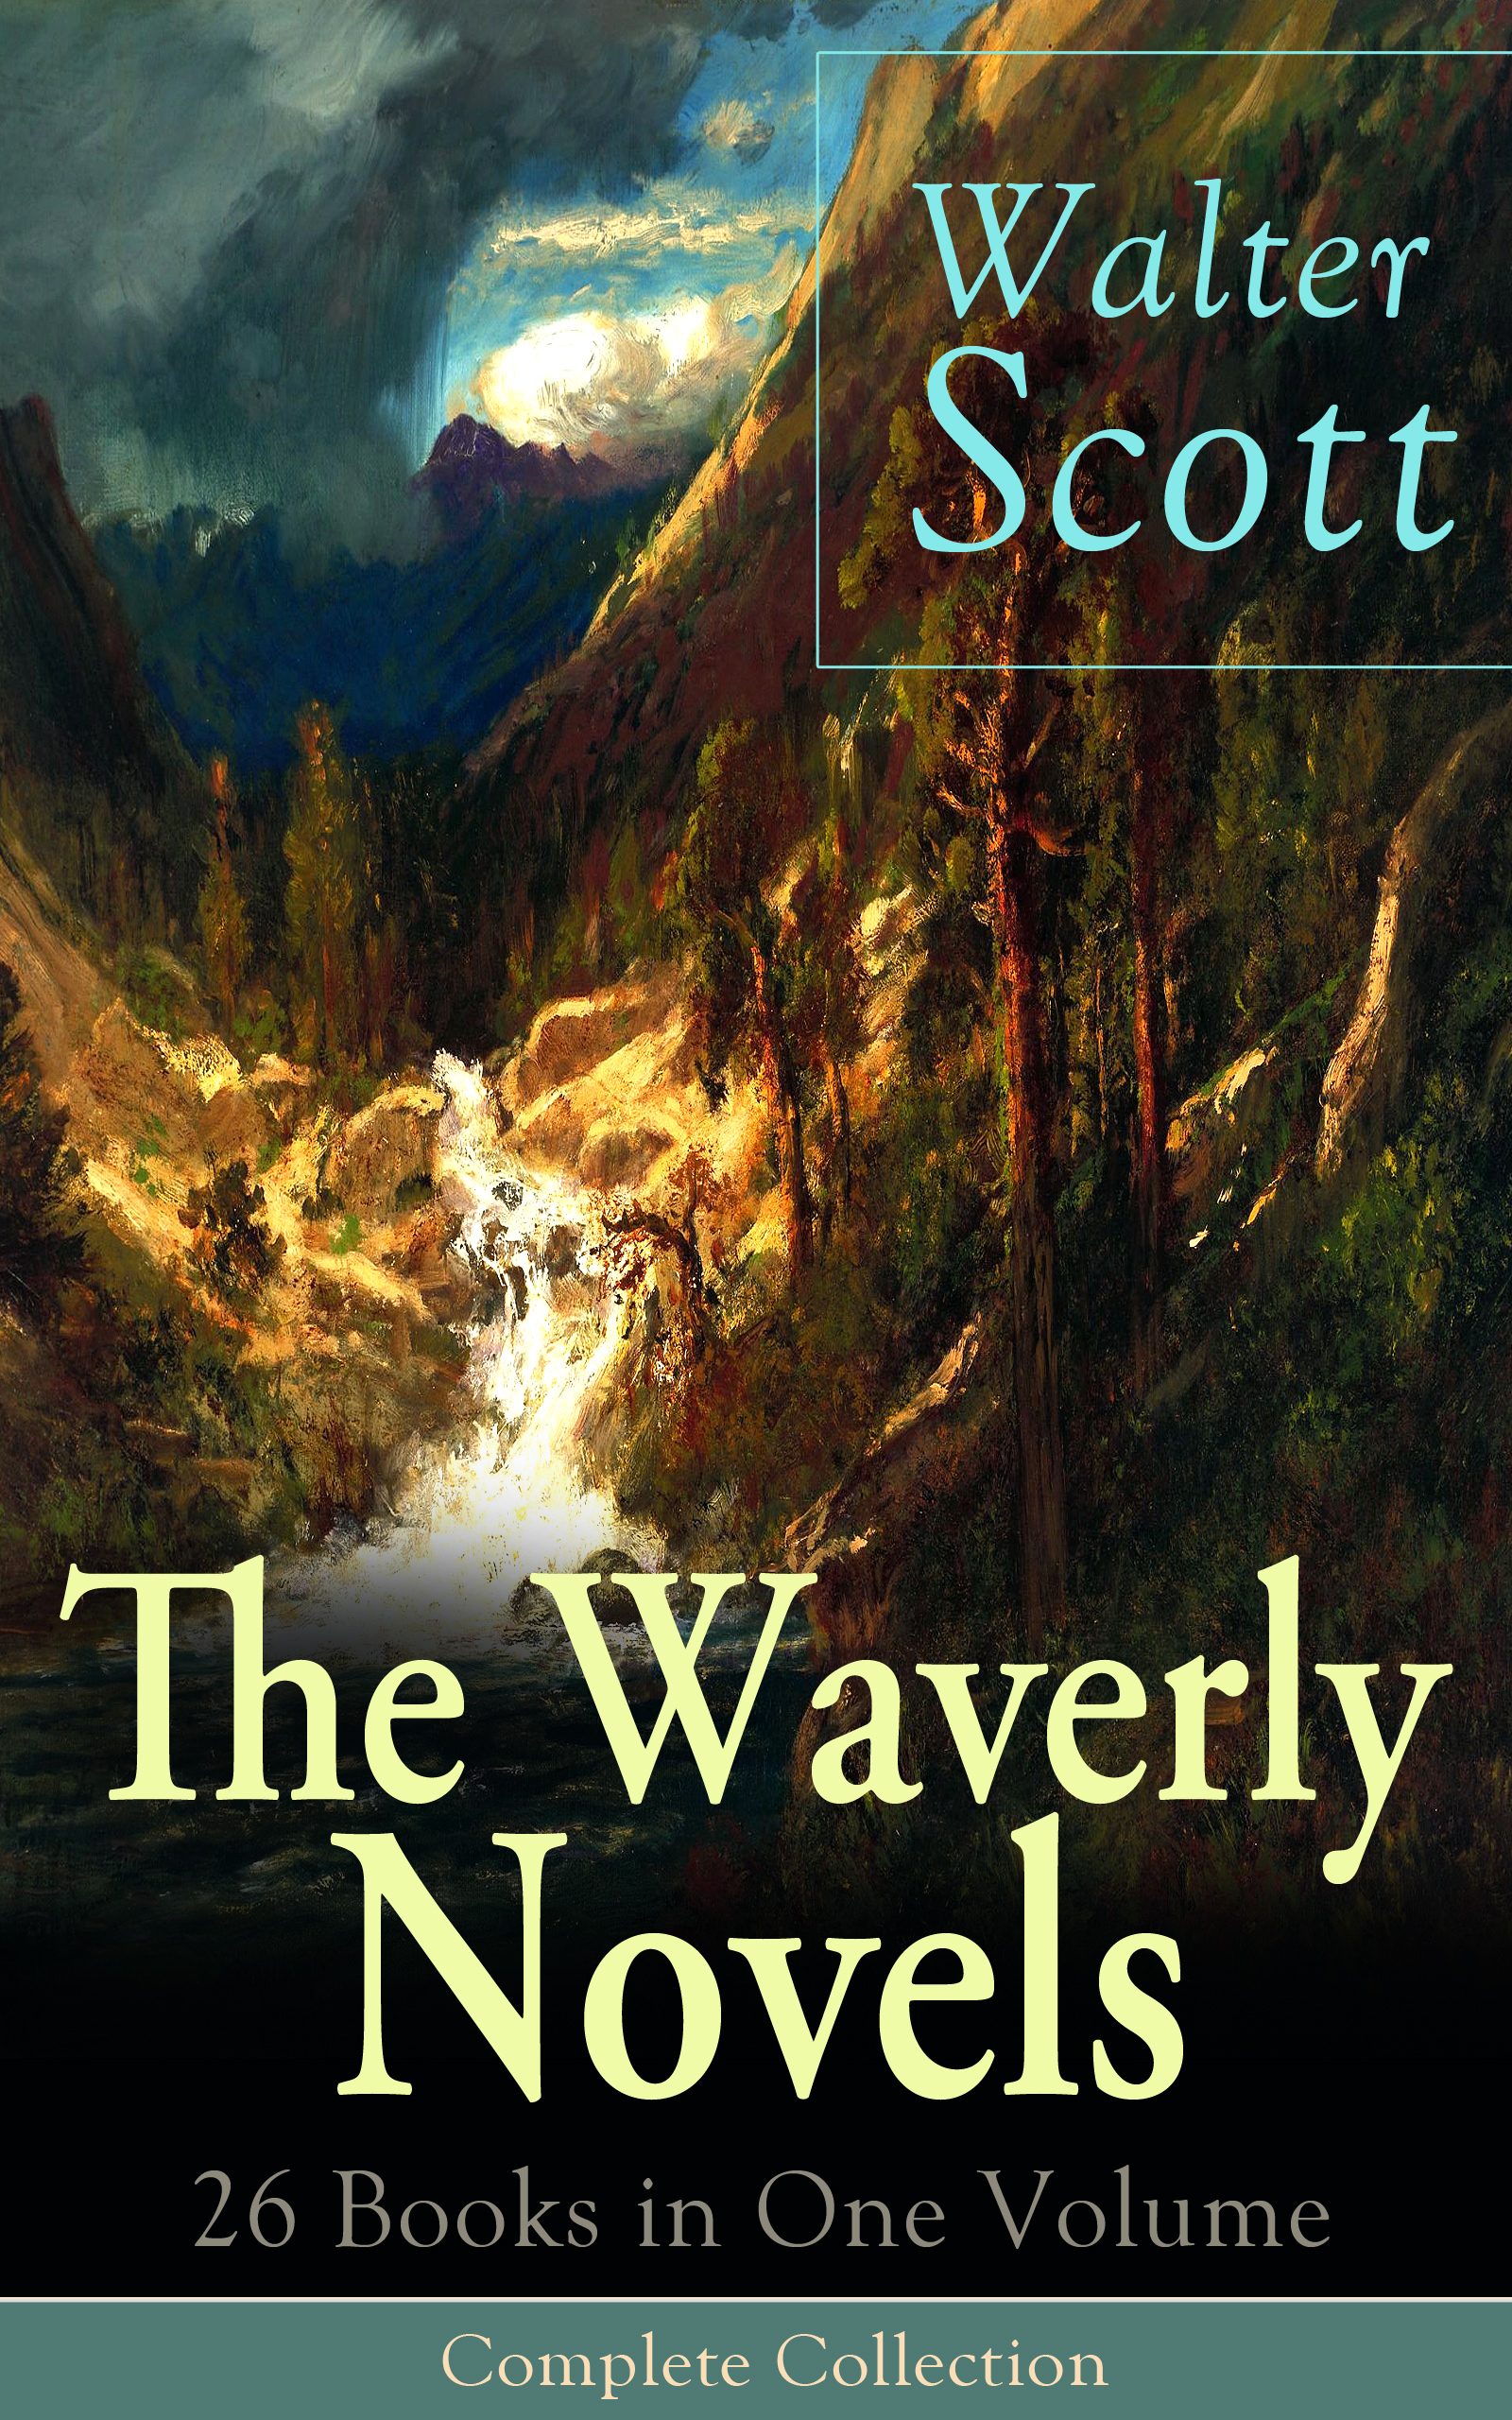 Walter Scott The Waverly Novels: 26 Books in One Volume - Complete Collection